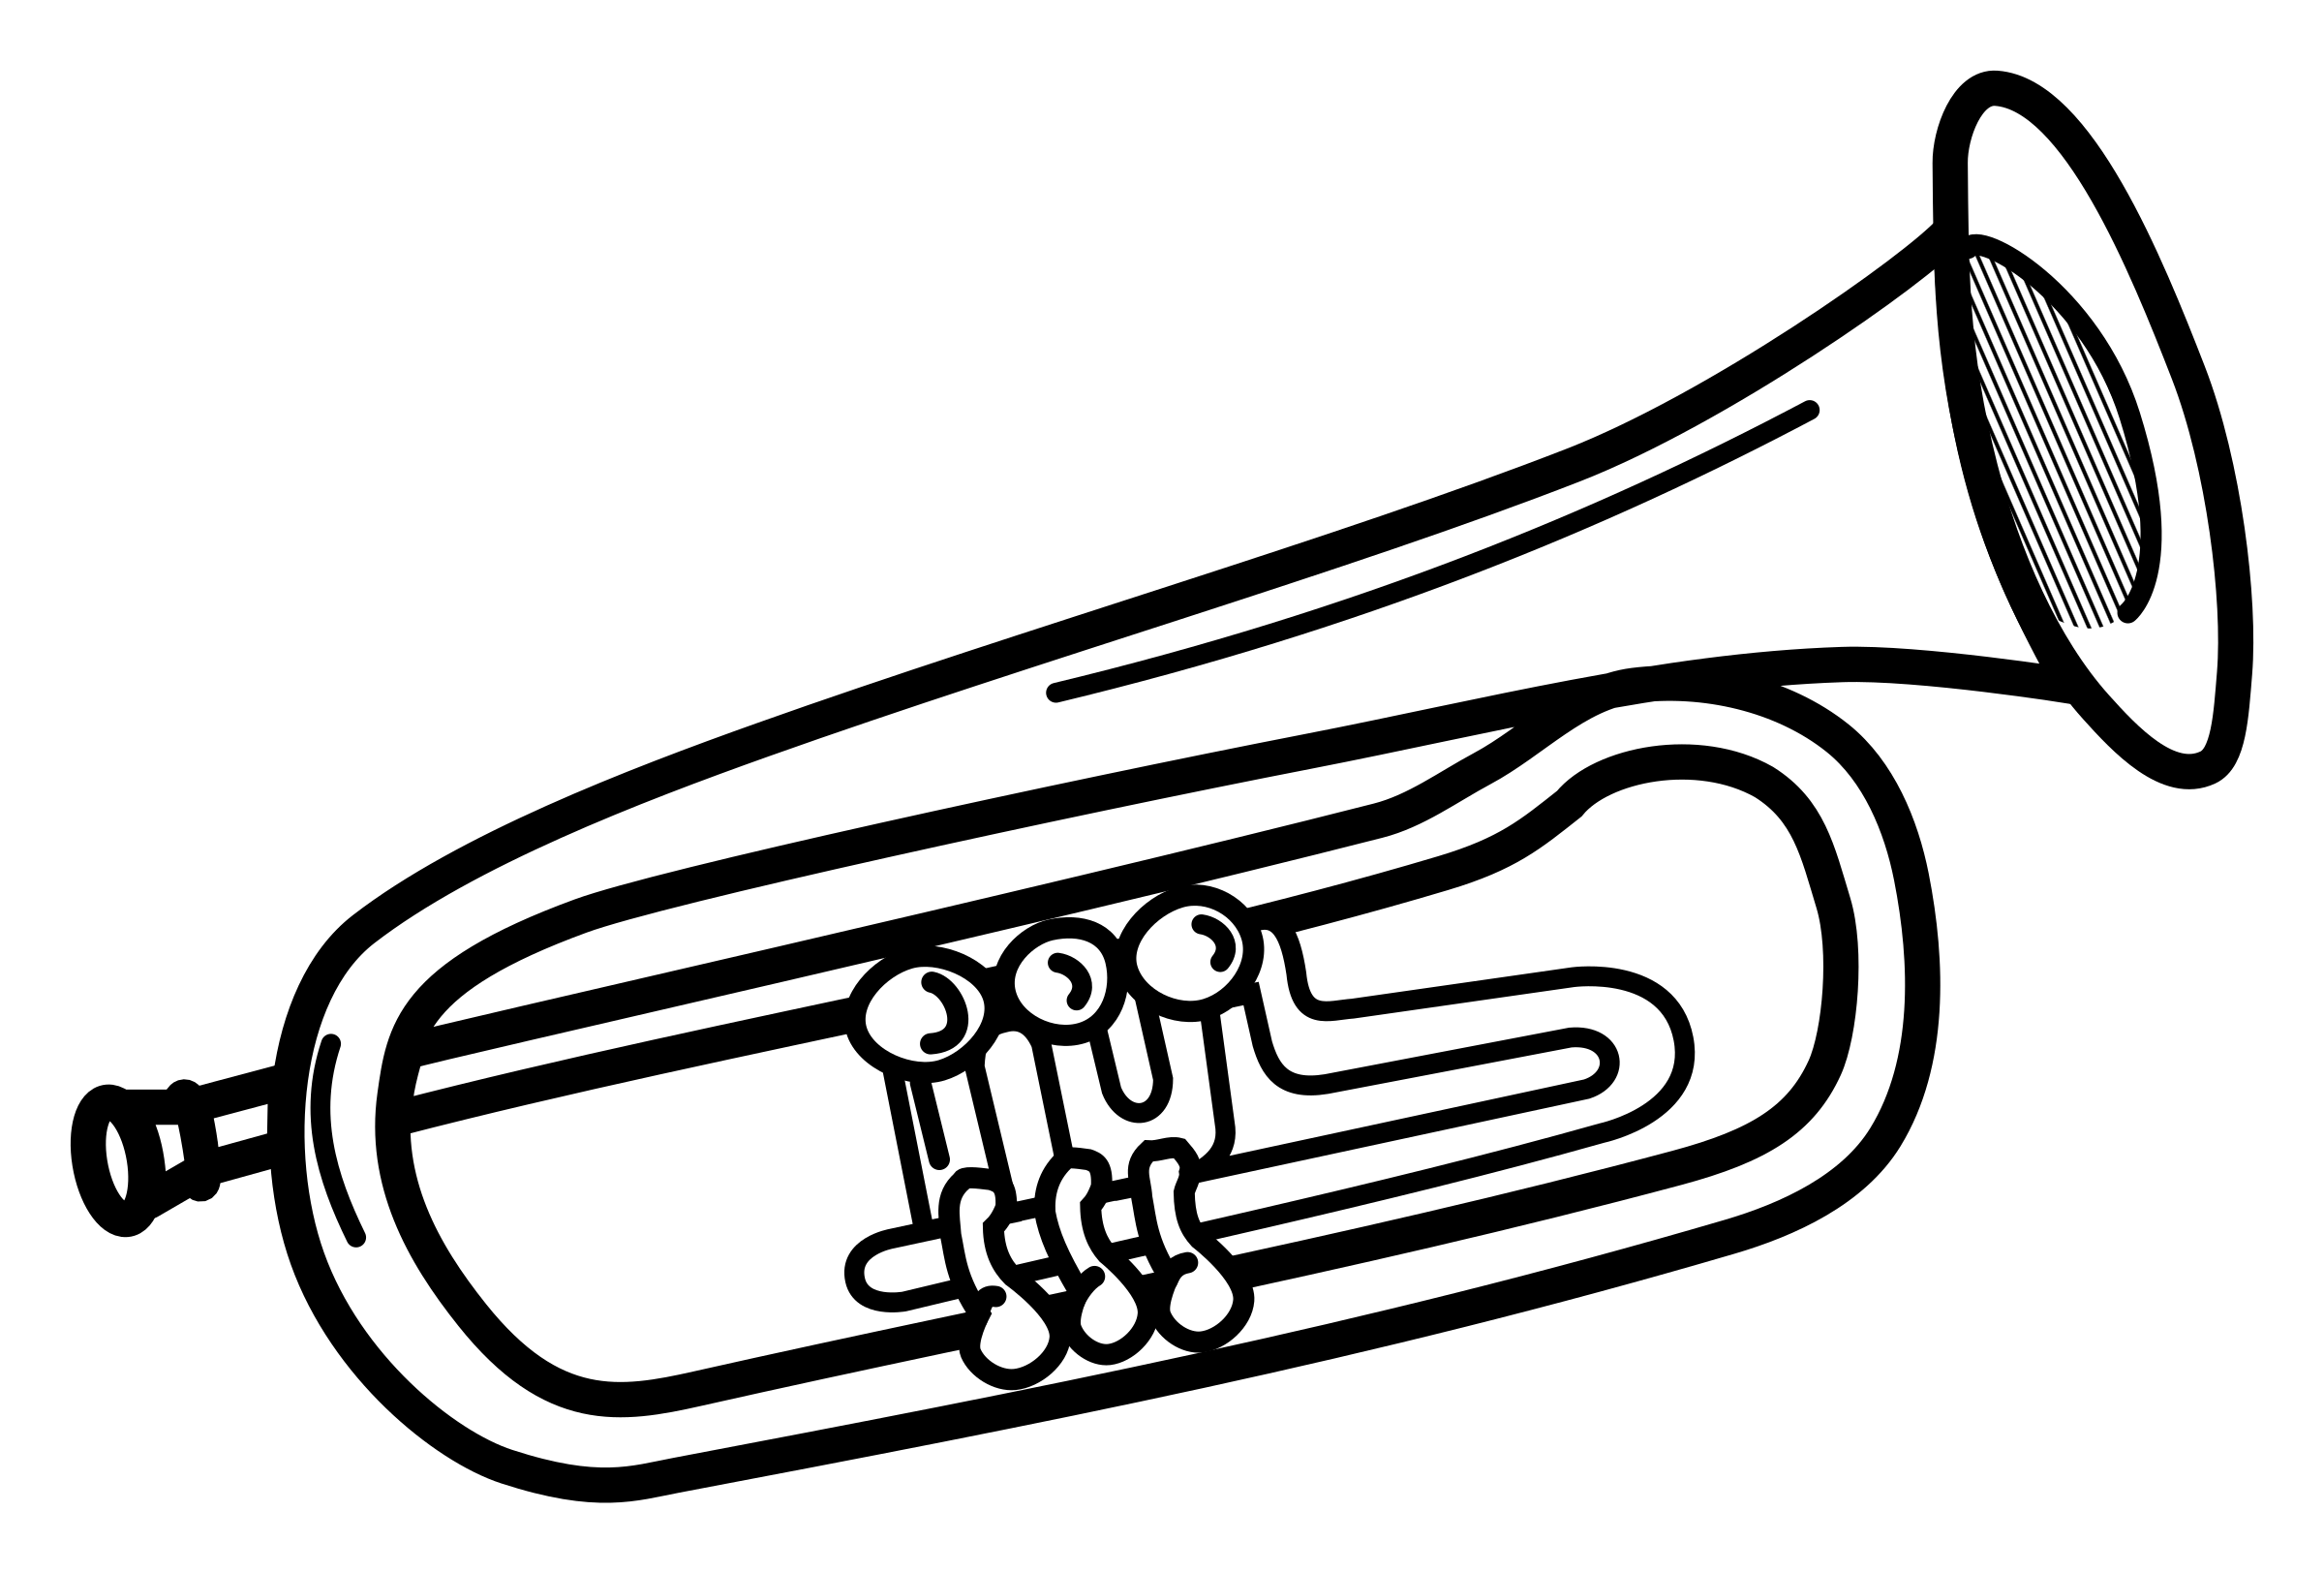 Trumpets clipart image transparent library Trumpet clip art free clipart images 3 wikiclipart ... image transparent library